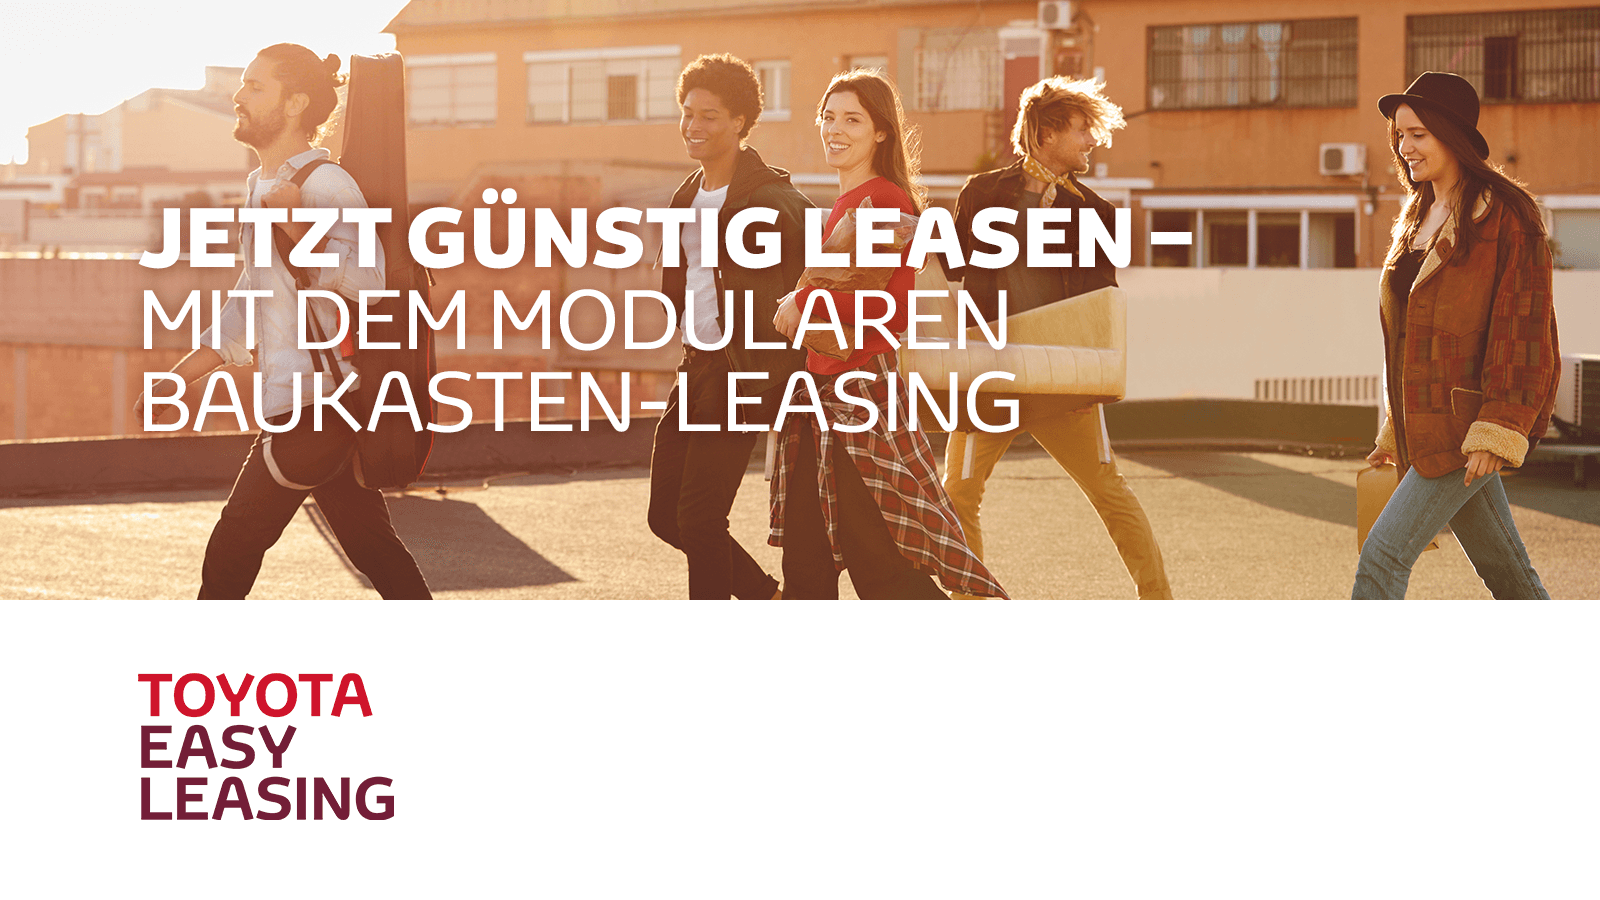 Toyota Easy Leasing